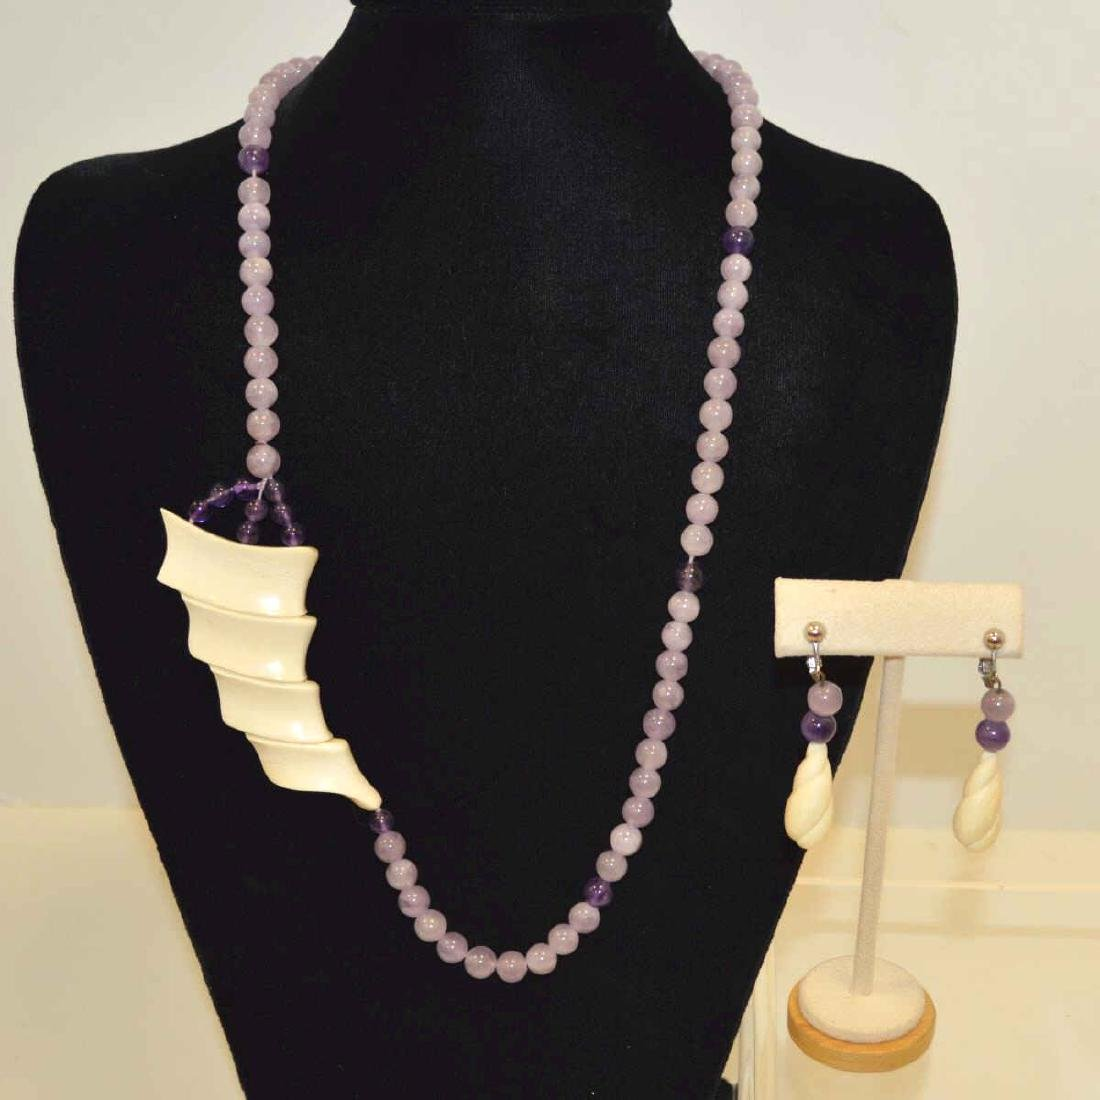 Amethyst and Ivory necklace and earrings